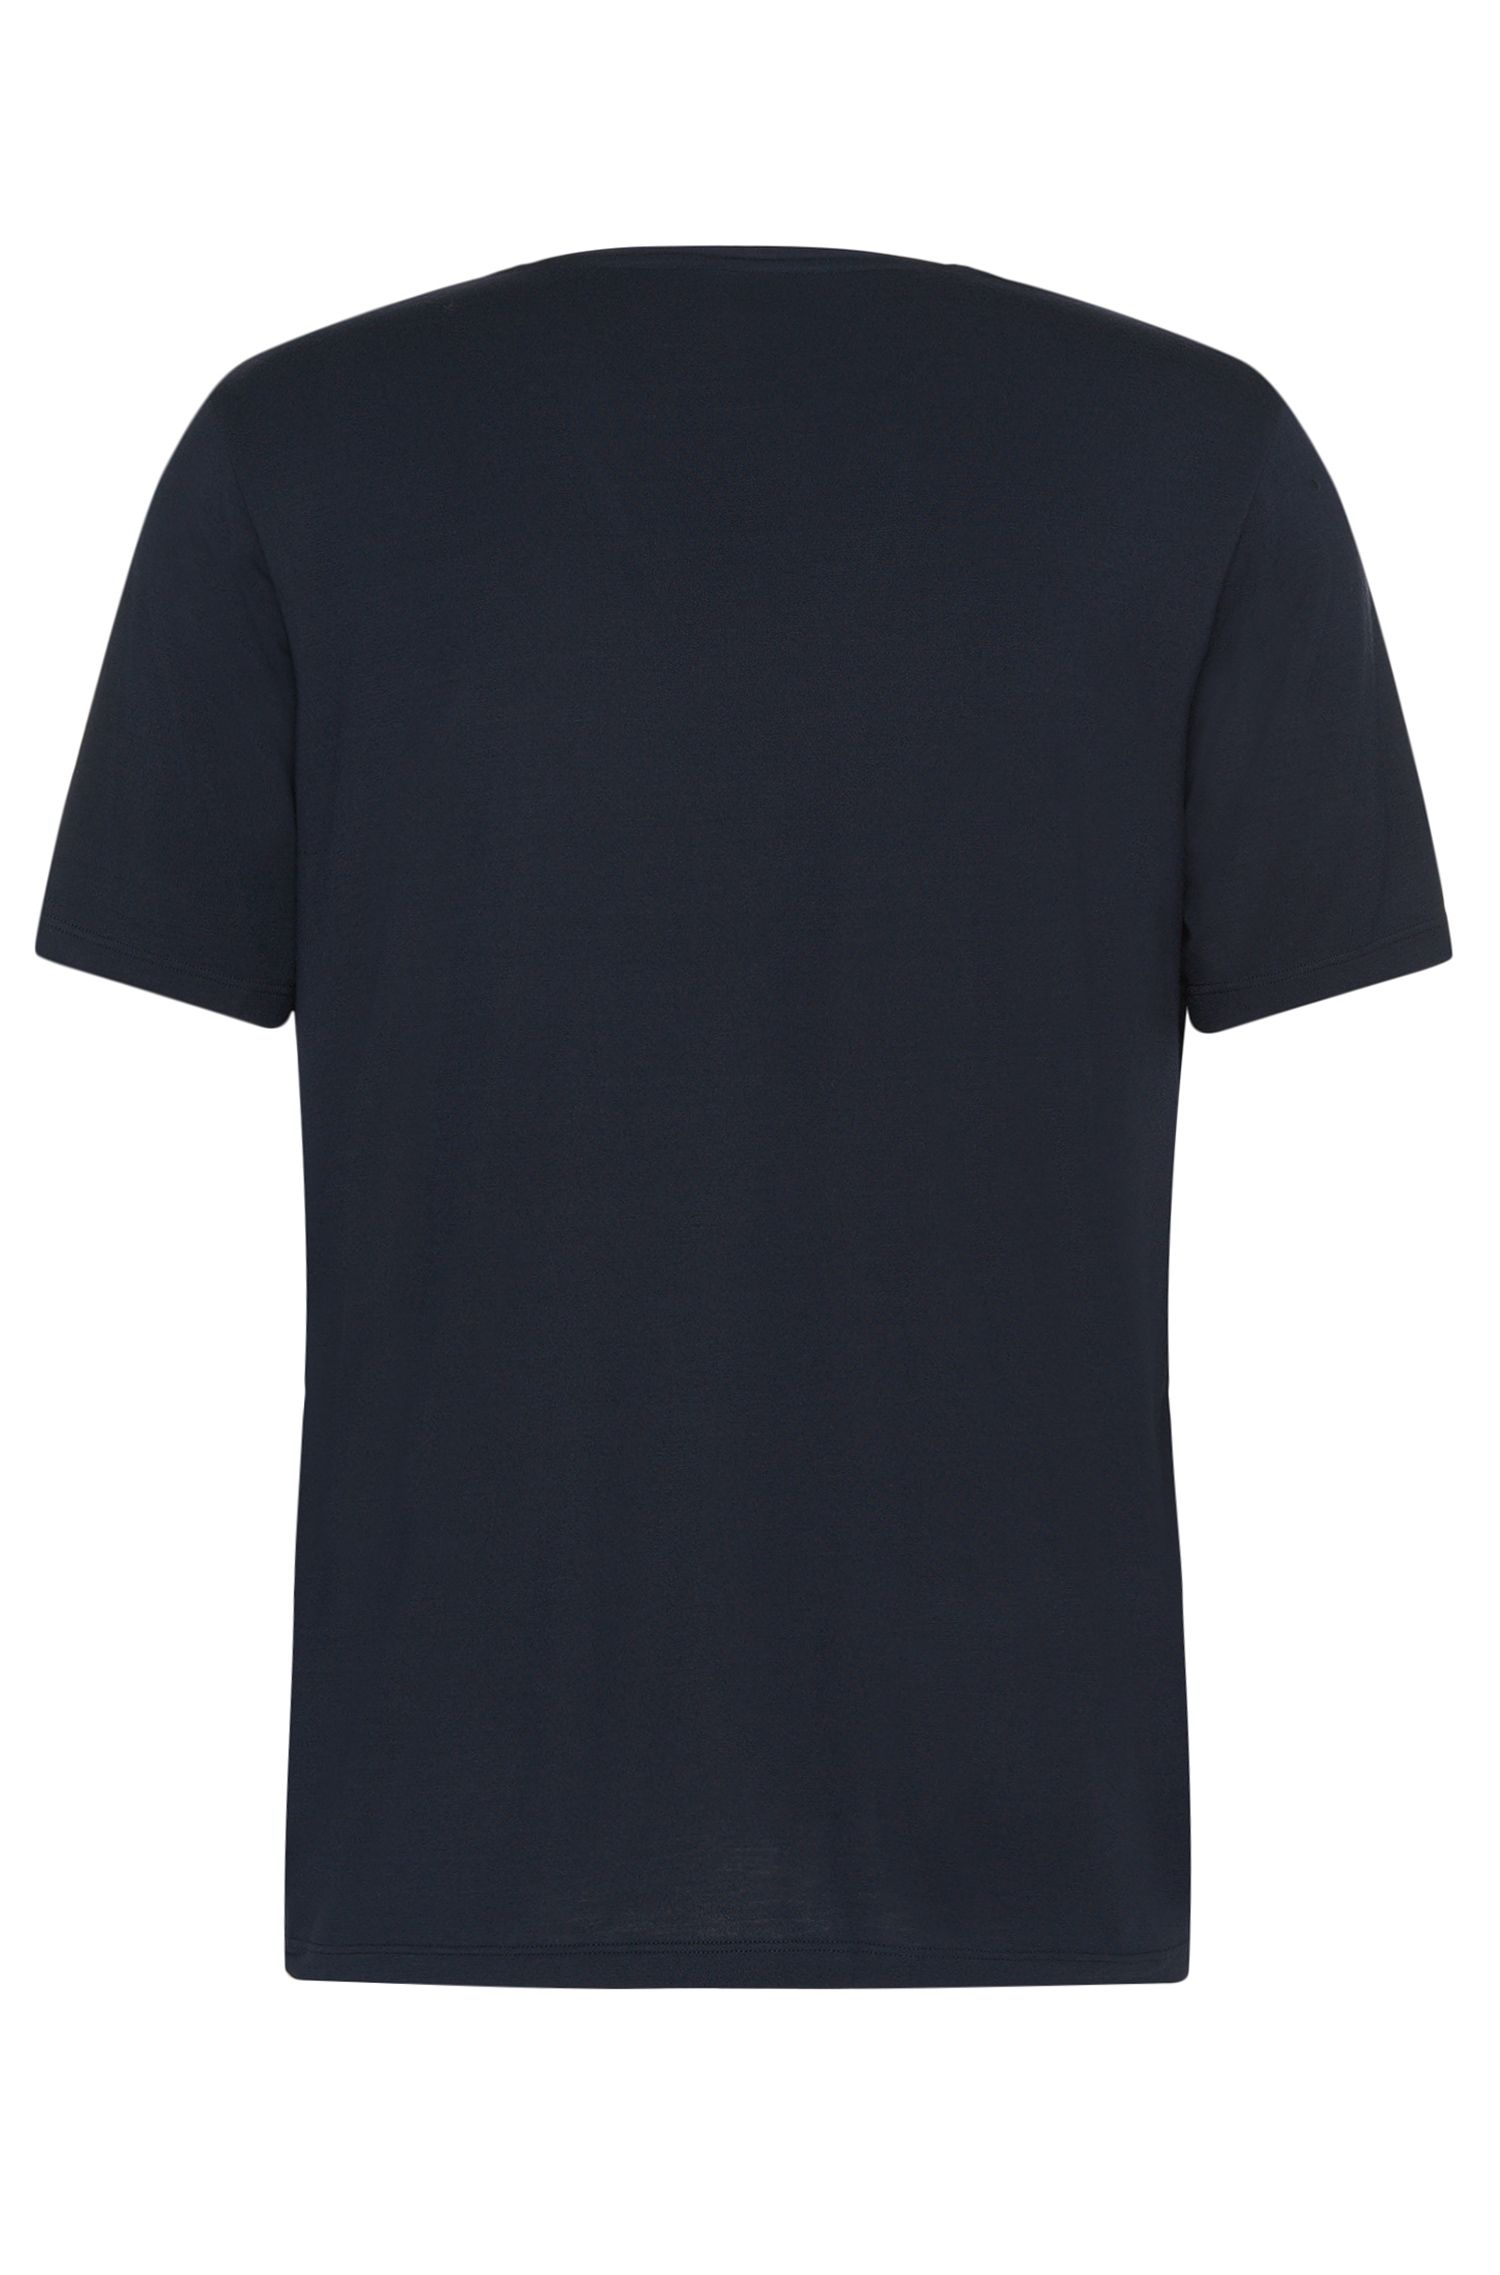 Stretch Modal V-Neck T-Shirt | Shirt VN SS, Dark Blue